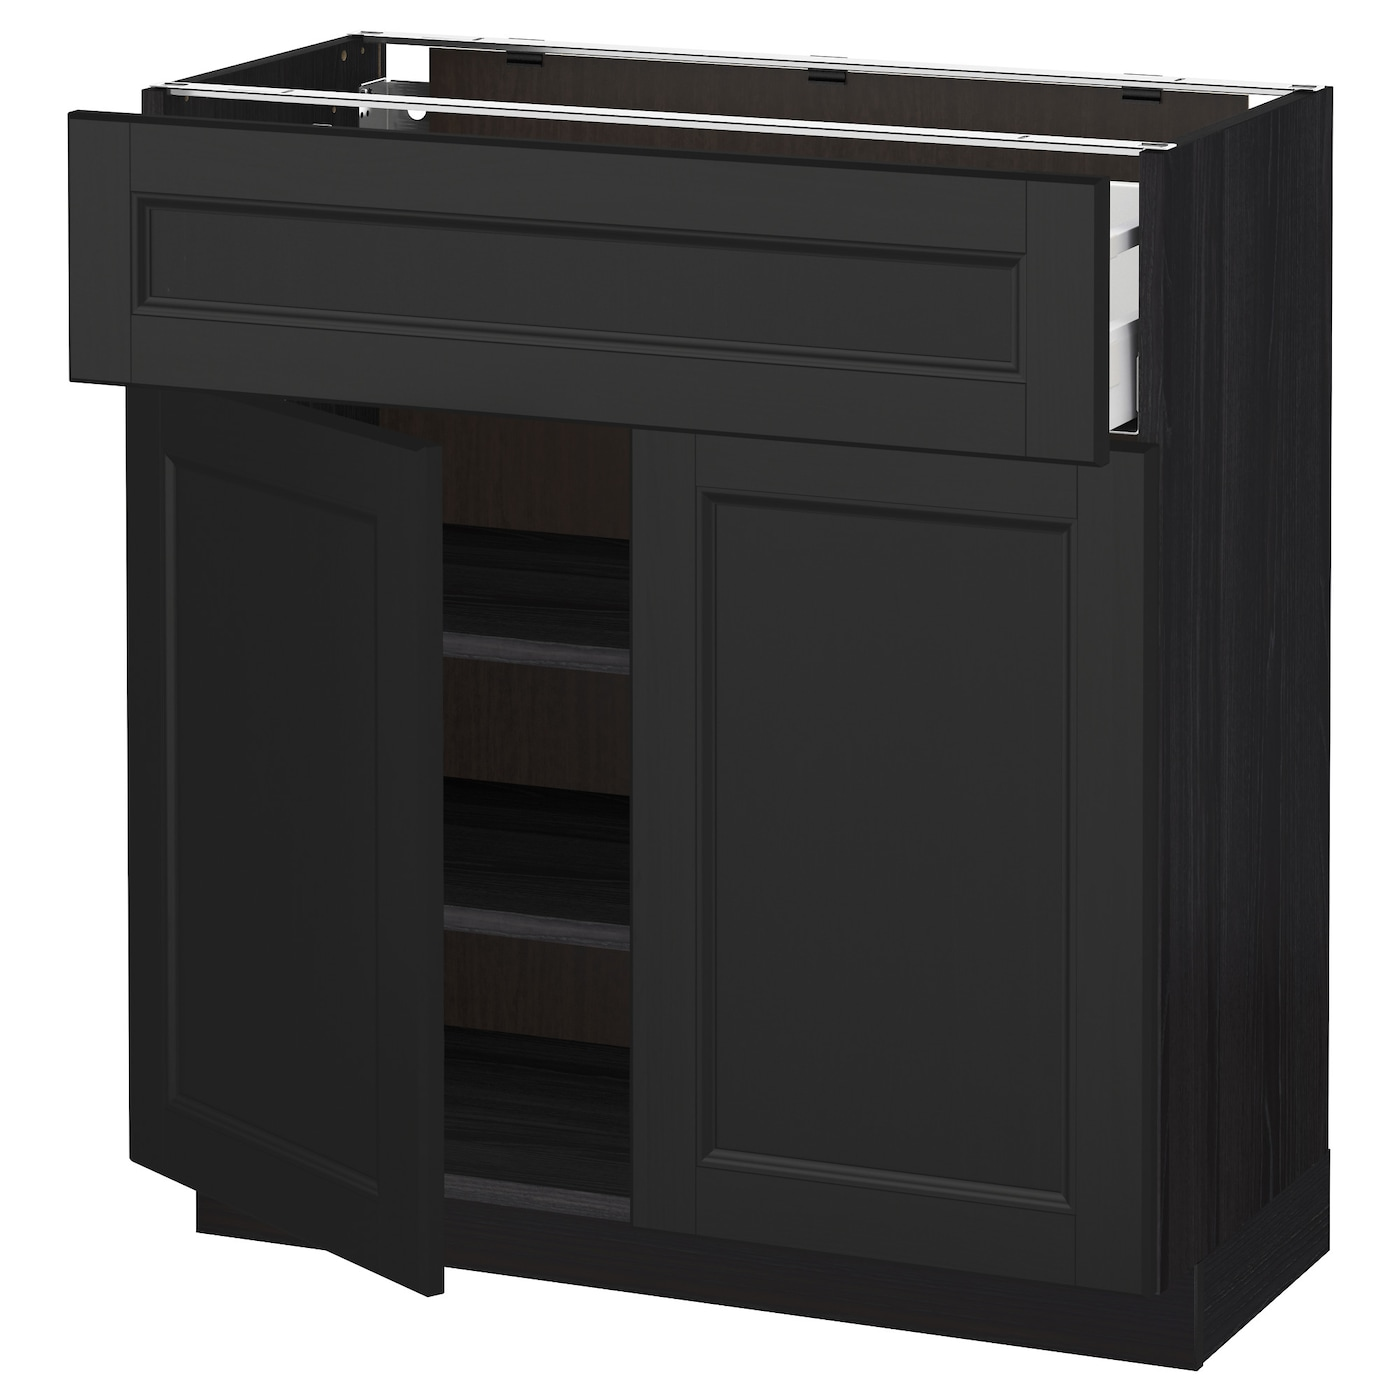 black base kitchen cabinets metod maximera base cabinet with drawer 2 doors black 12317